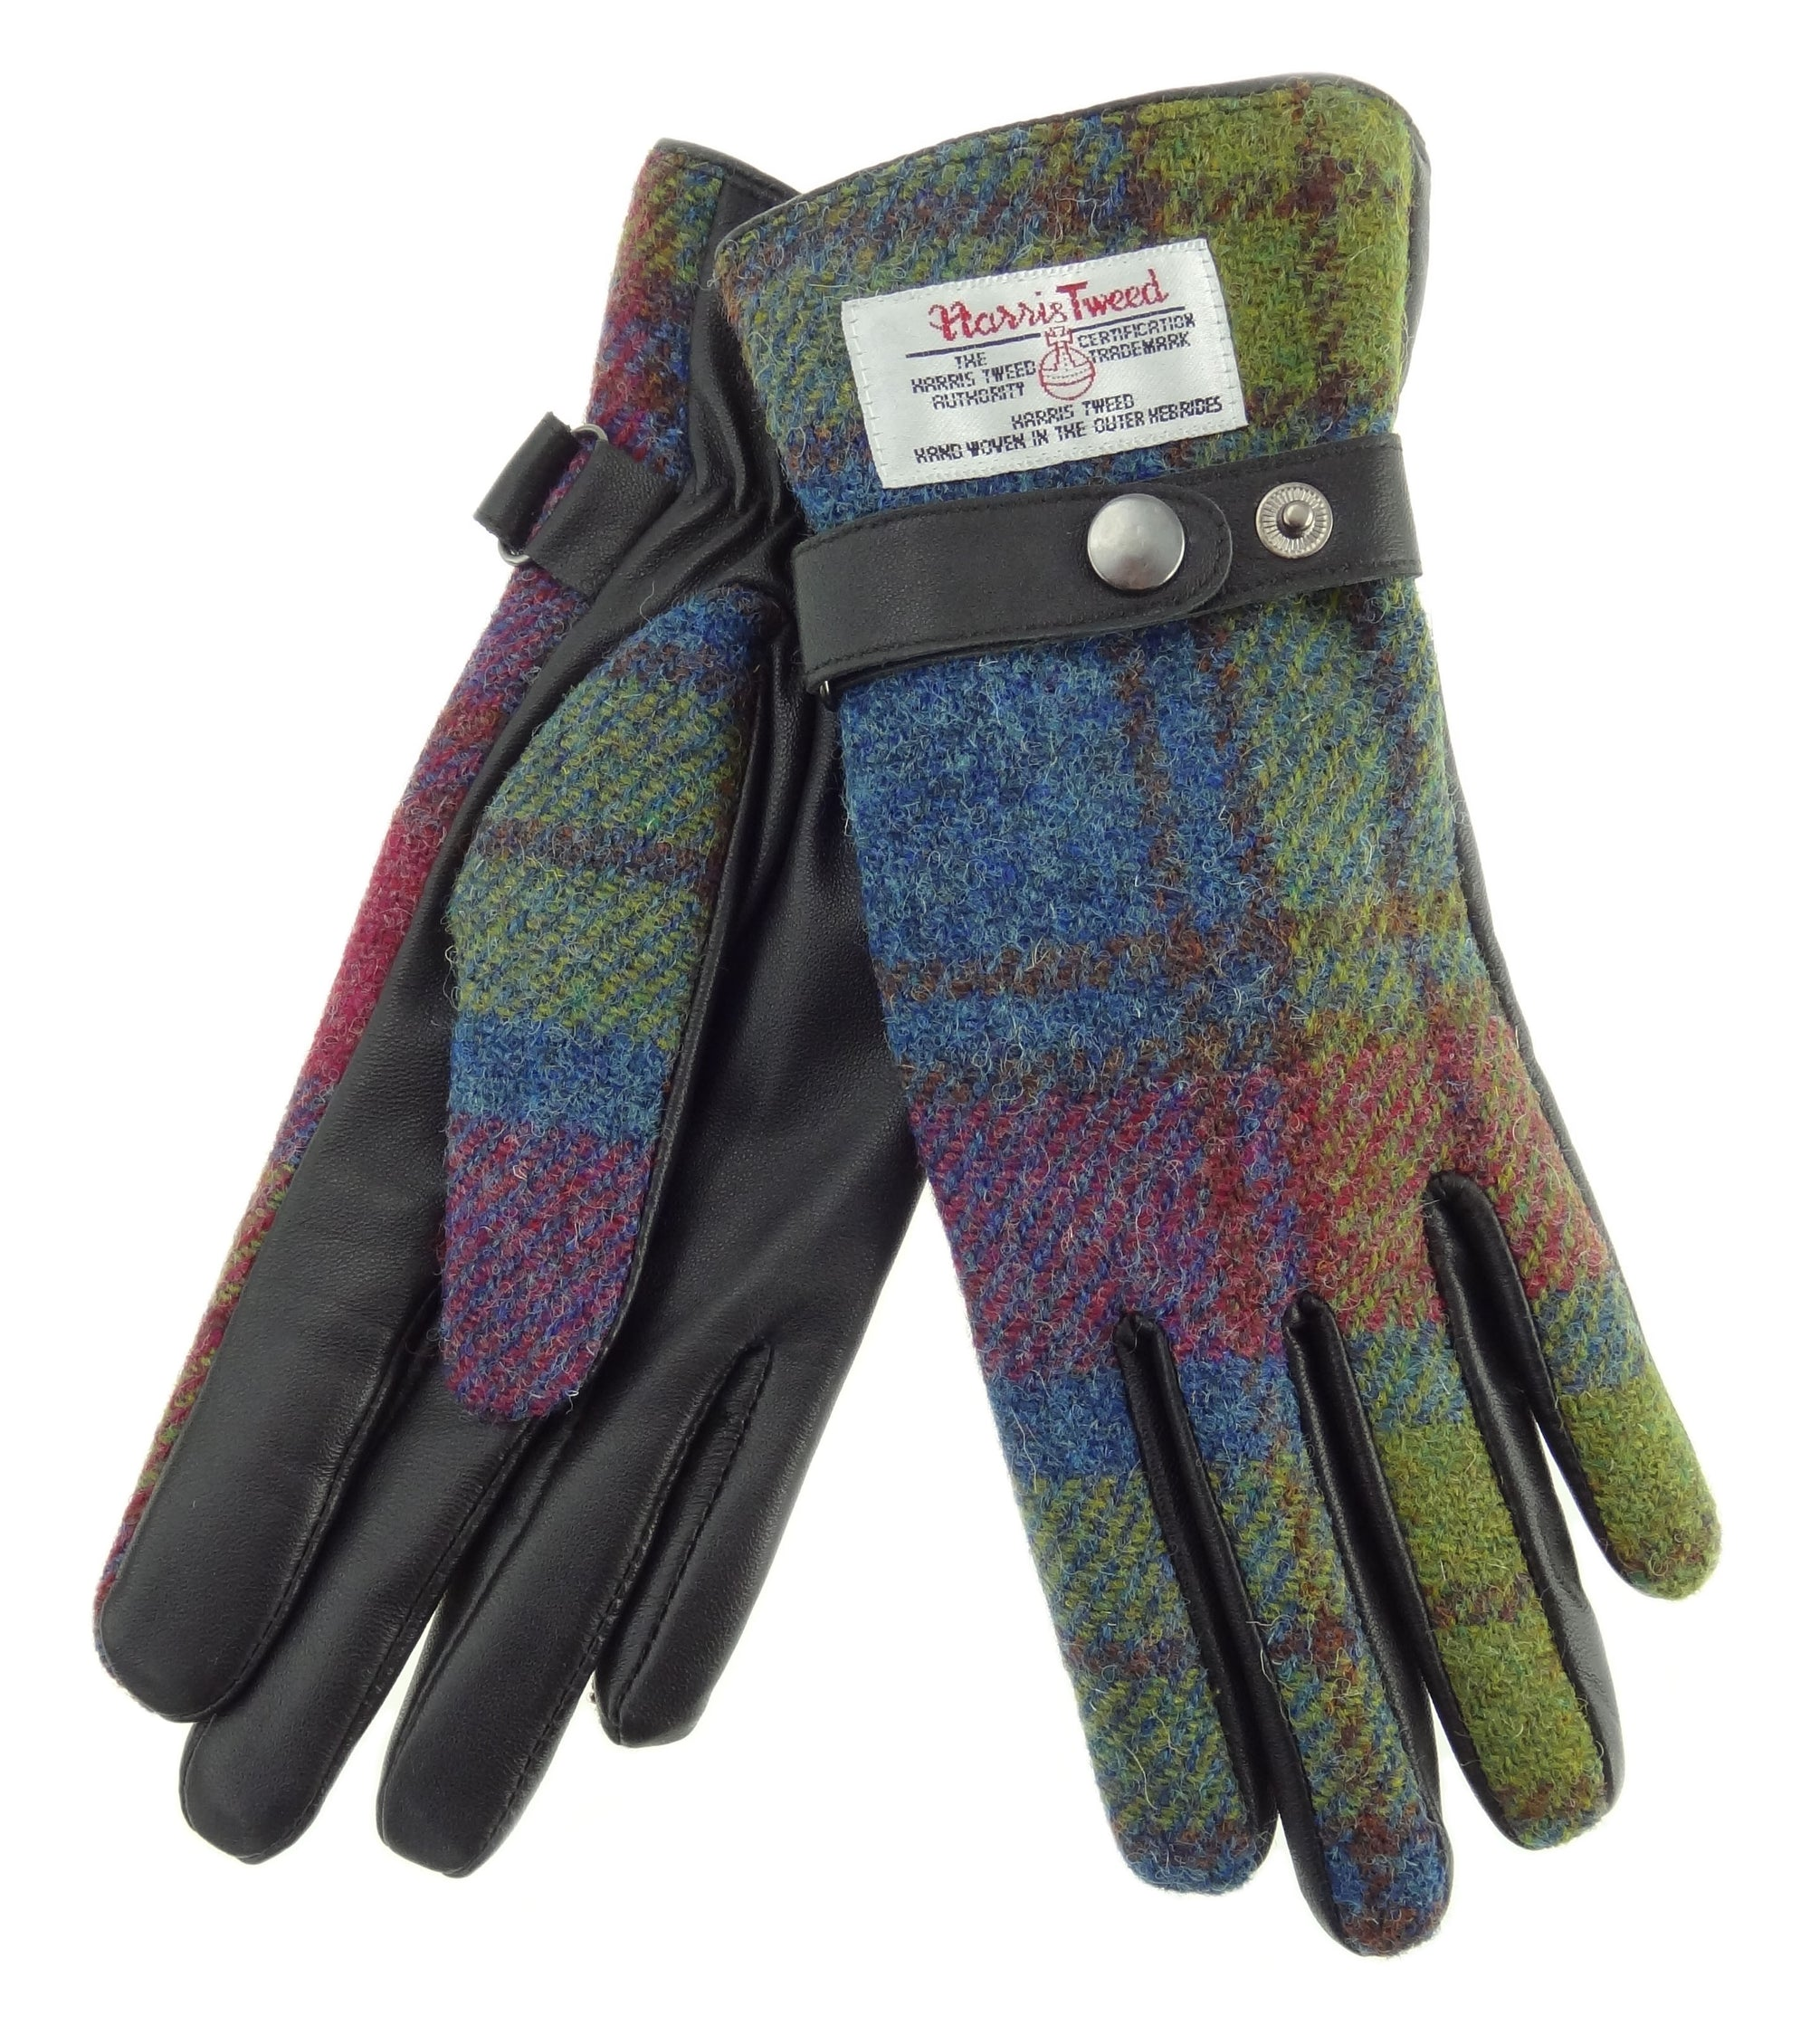 Womens Harris Tweed Gloves - With Strap - Brown Leather LB3001